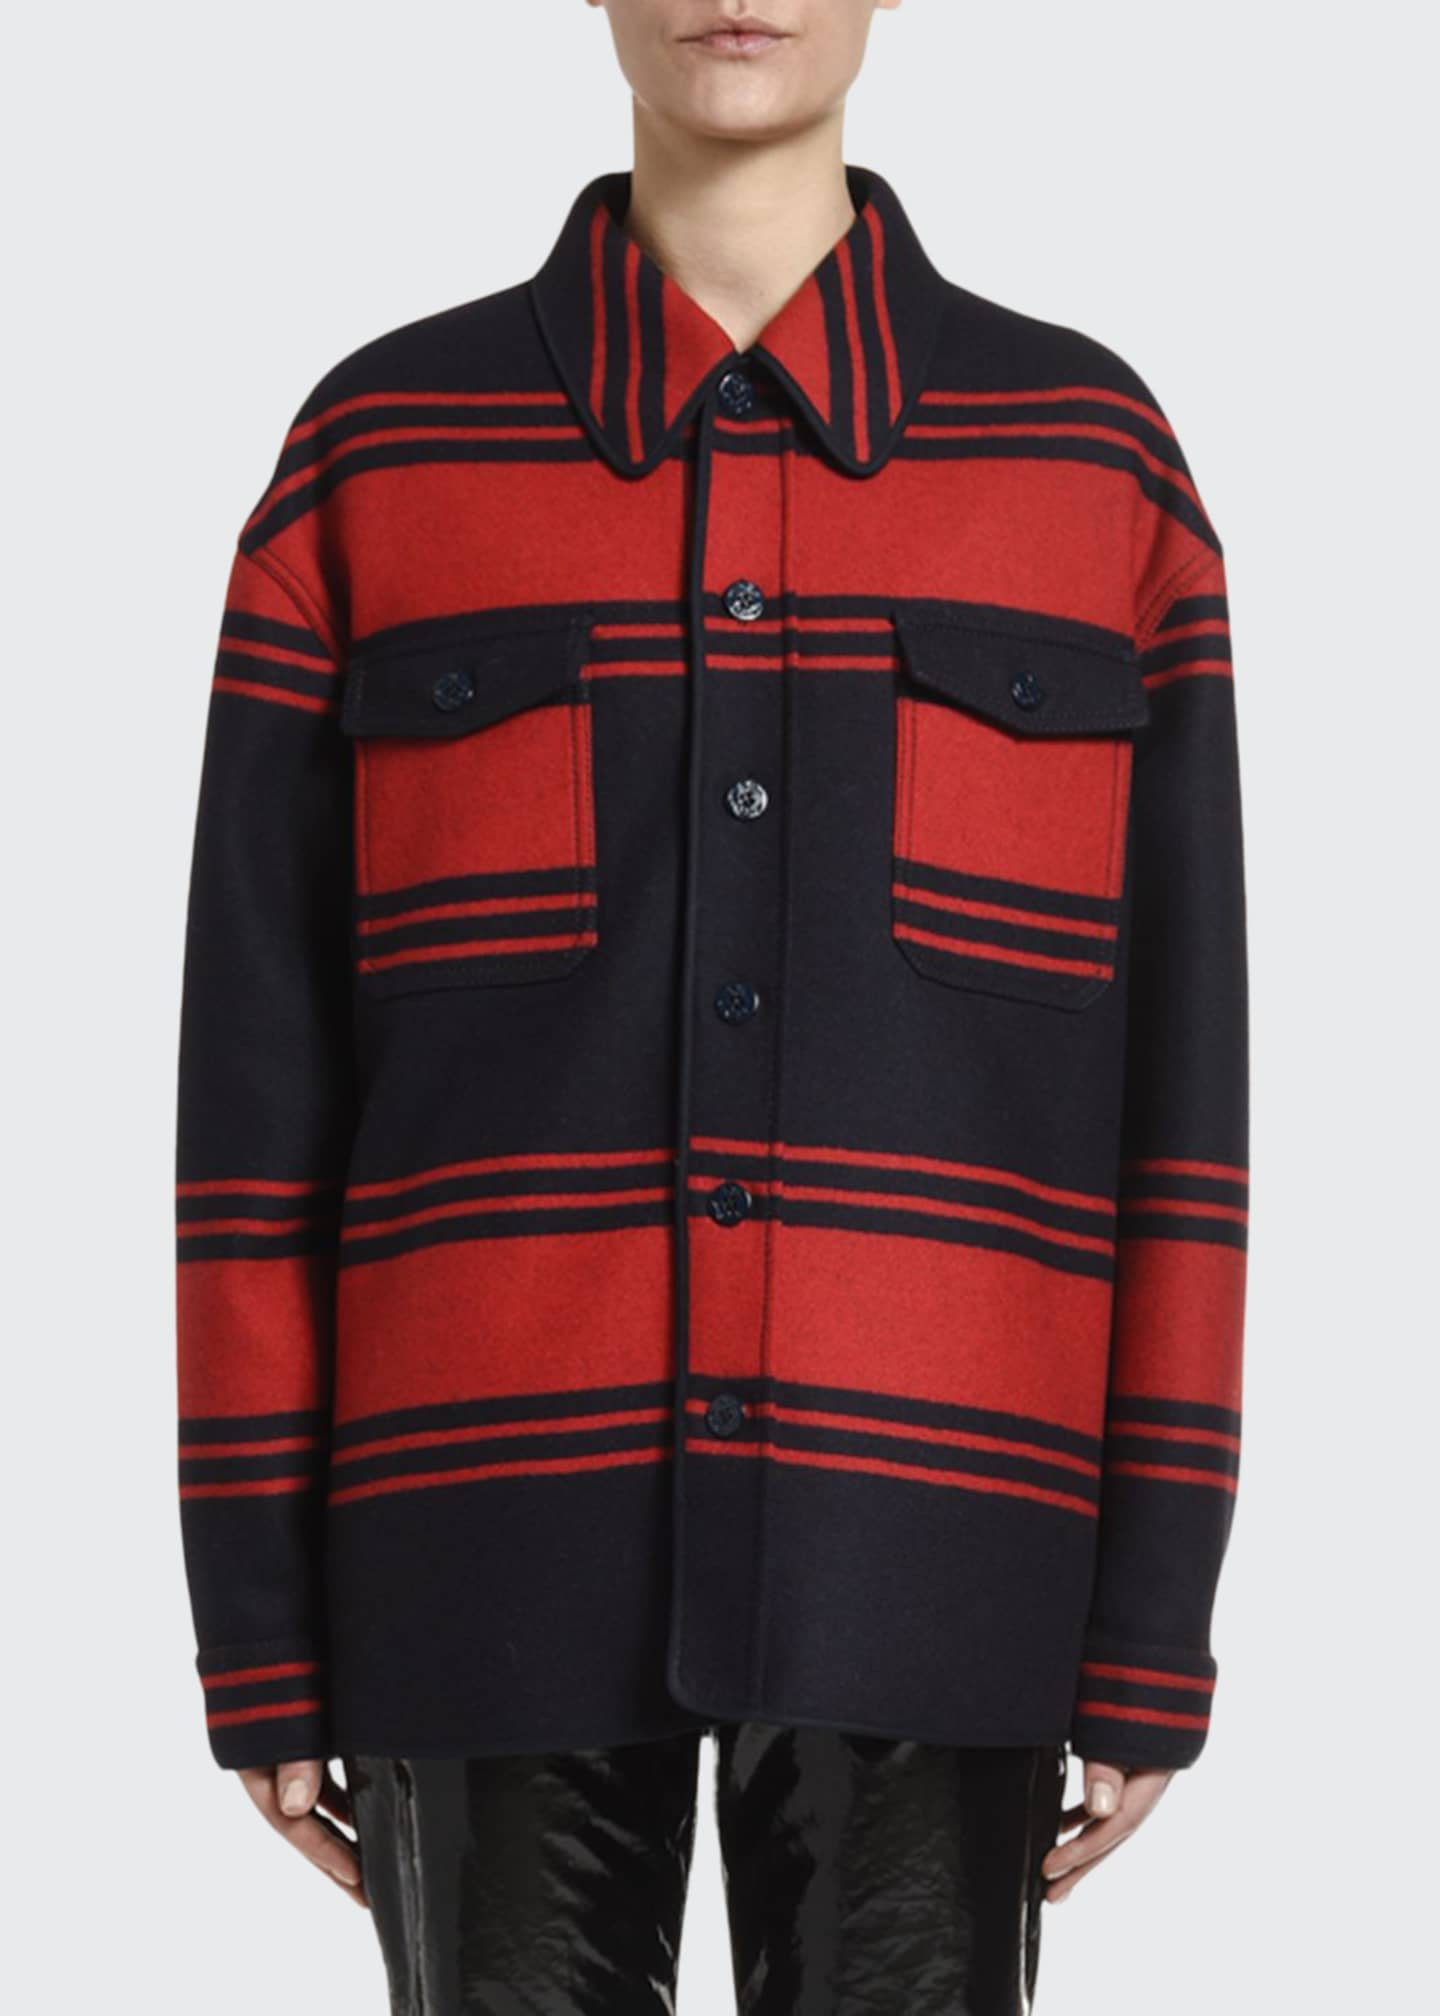 No. 21 Collared Wool Striped Button-Down Shirt